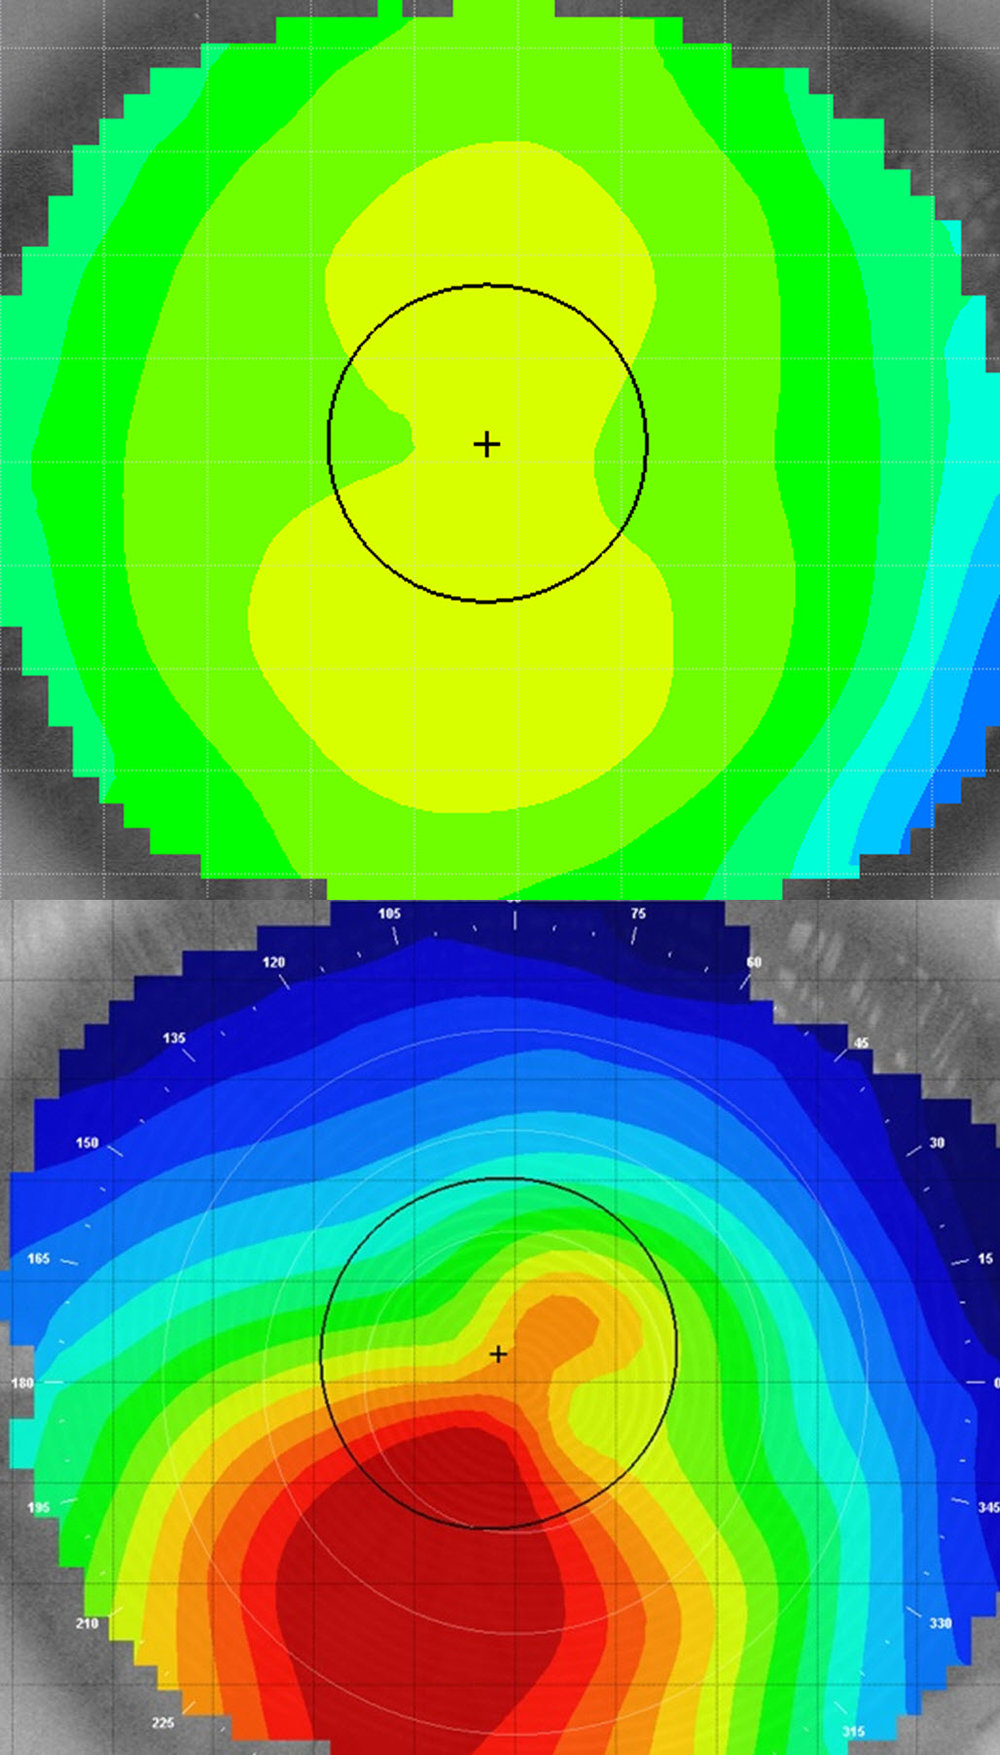 Corneal Topography of Keratoconus